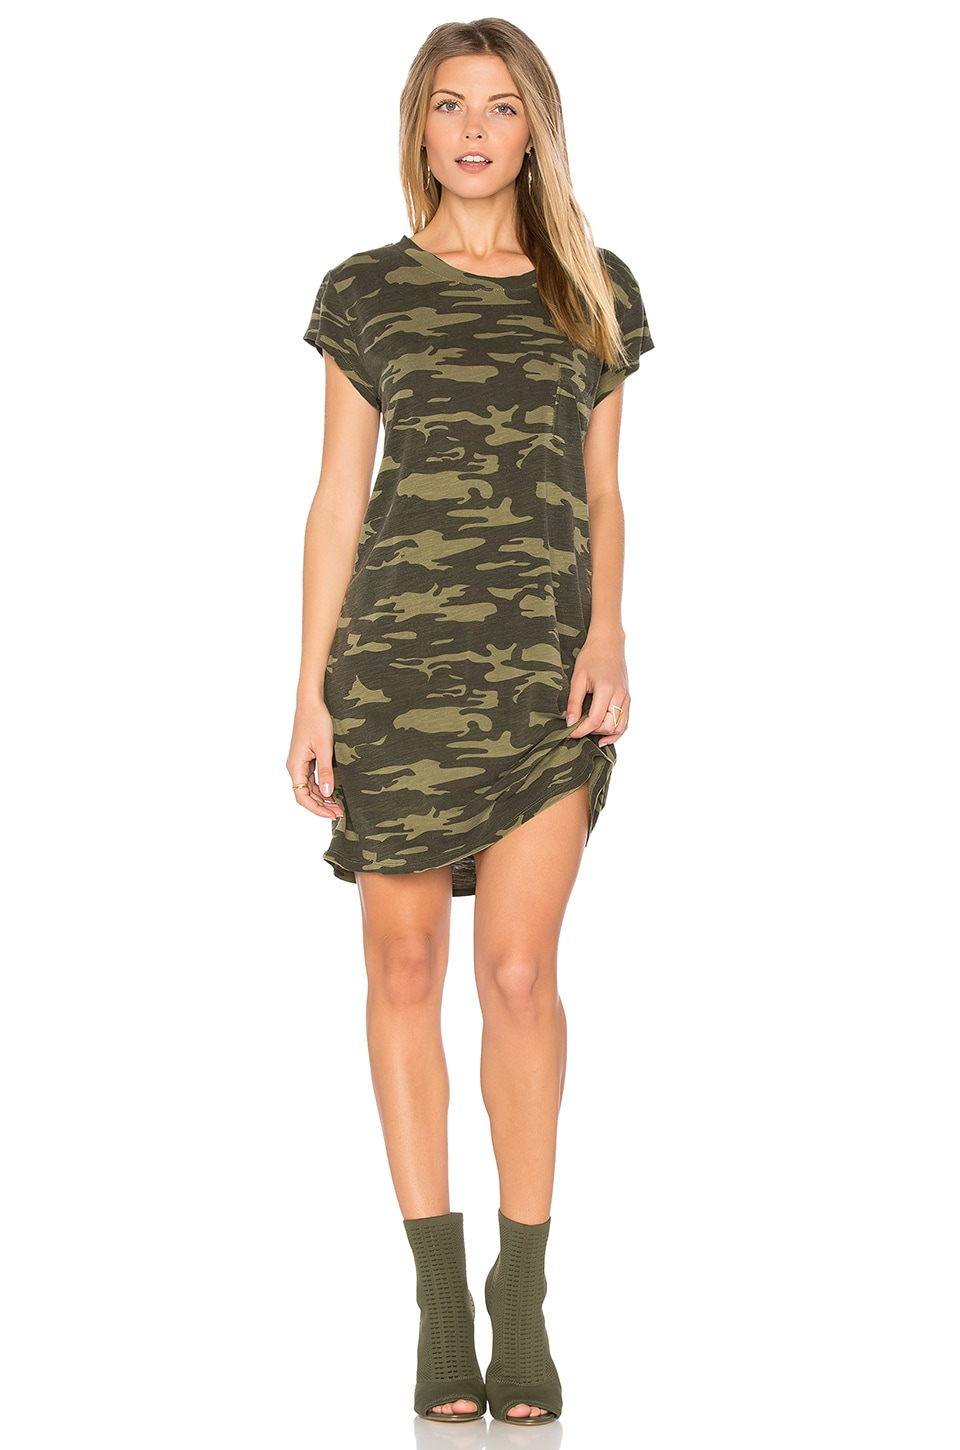 Sanctuary Camo T-shirt Dress in Heritage Camo